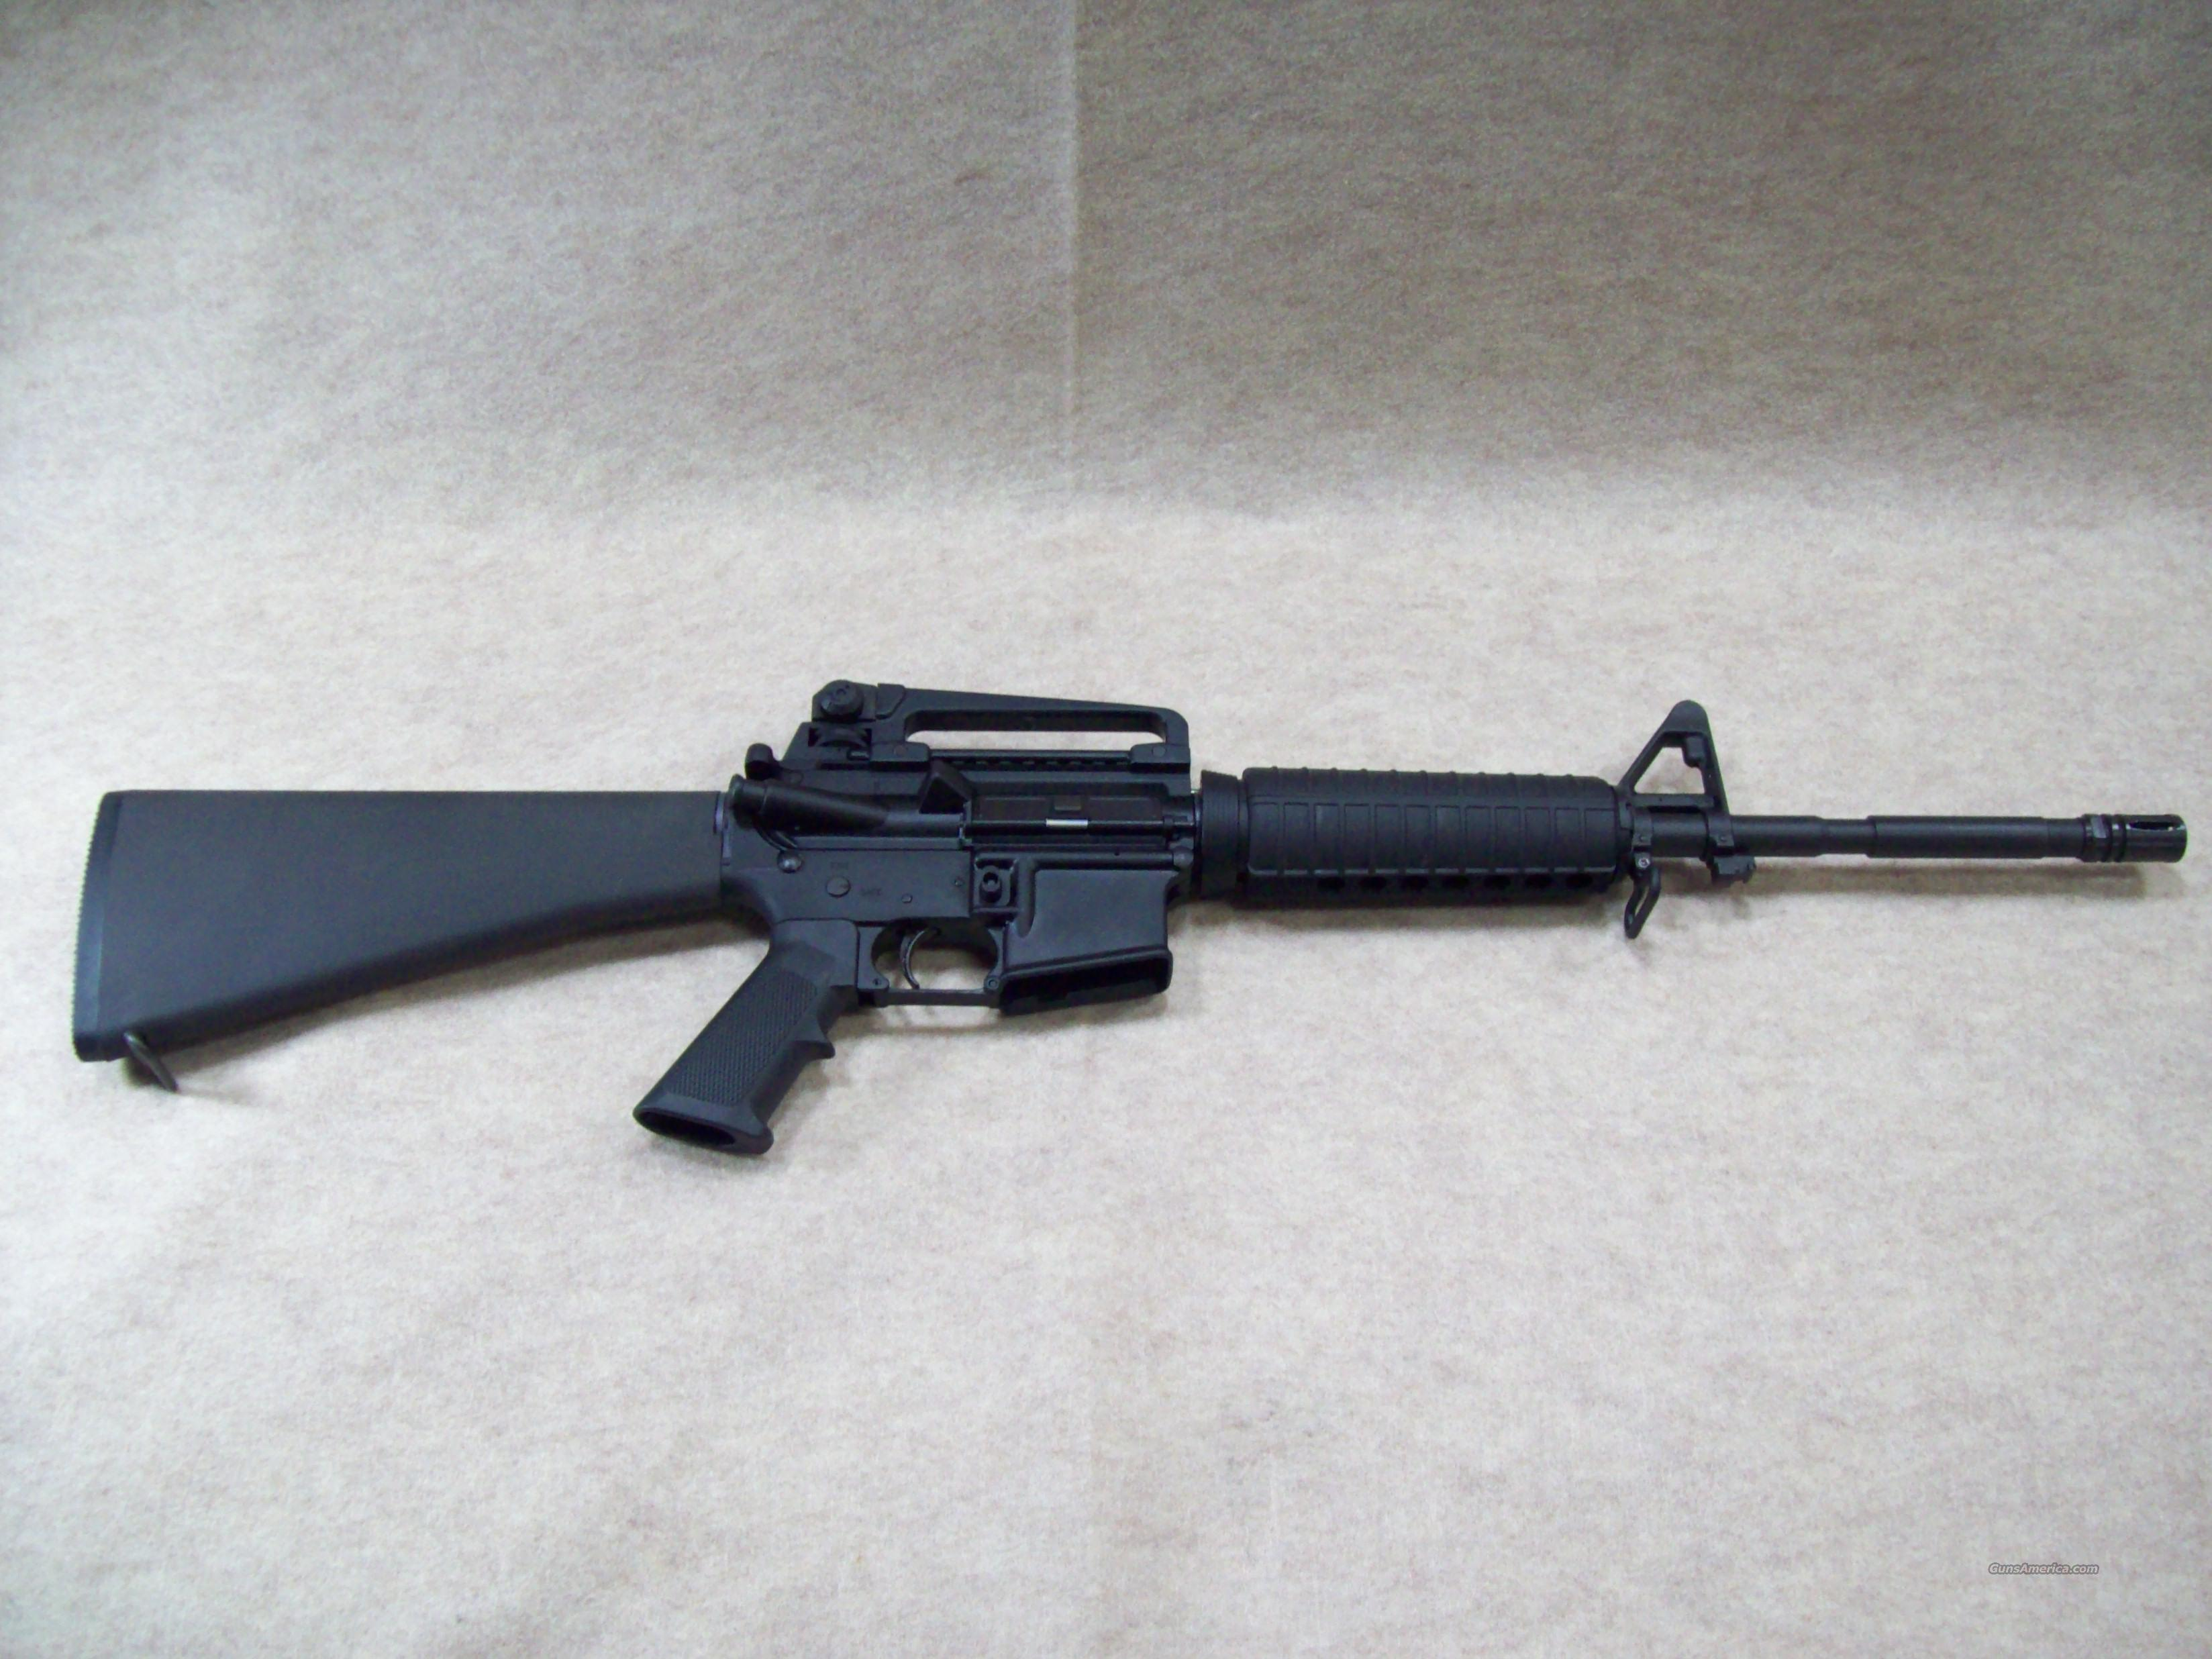 Alexander Arms AR-15  Guns > Rifles > AR-15 Rifles - Small Manufacturers > Complete Rifle